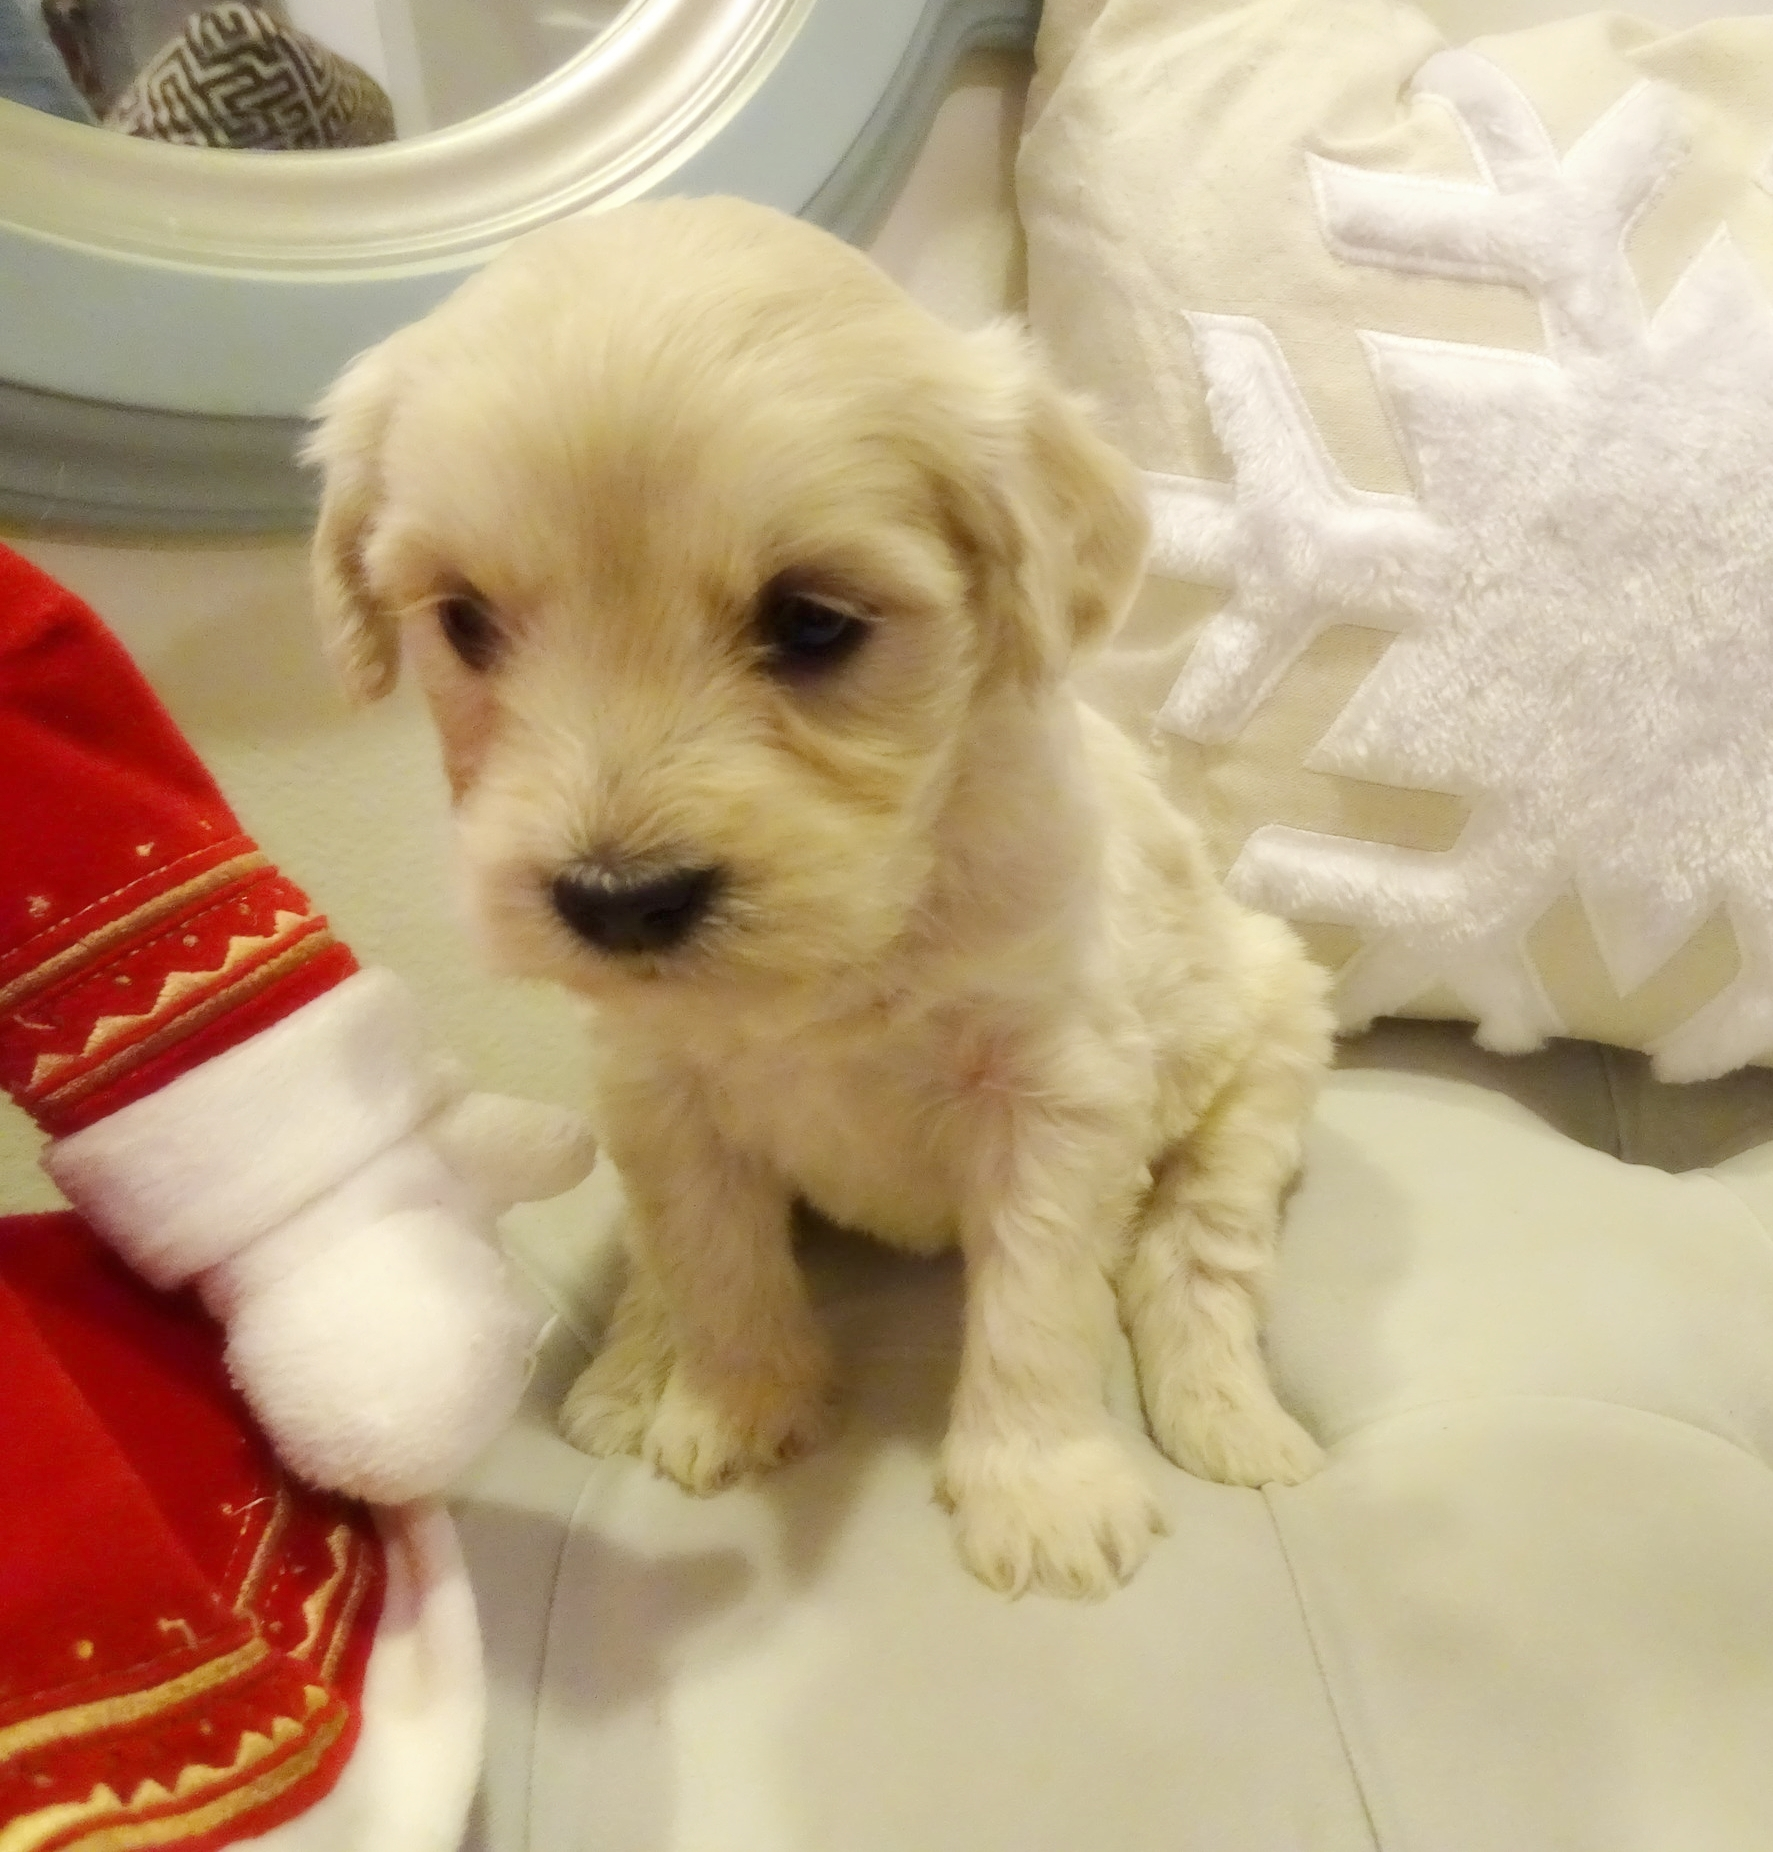 This is Jewell,a 5-weeks-old cream female with a wavy non-shedding coat. She weighs 2 lbs 10 oz. She is charting 15 lbs full grown. She scored Mostly 3's on her Volhard aptitude test which is a fabulous score.